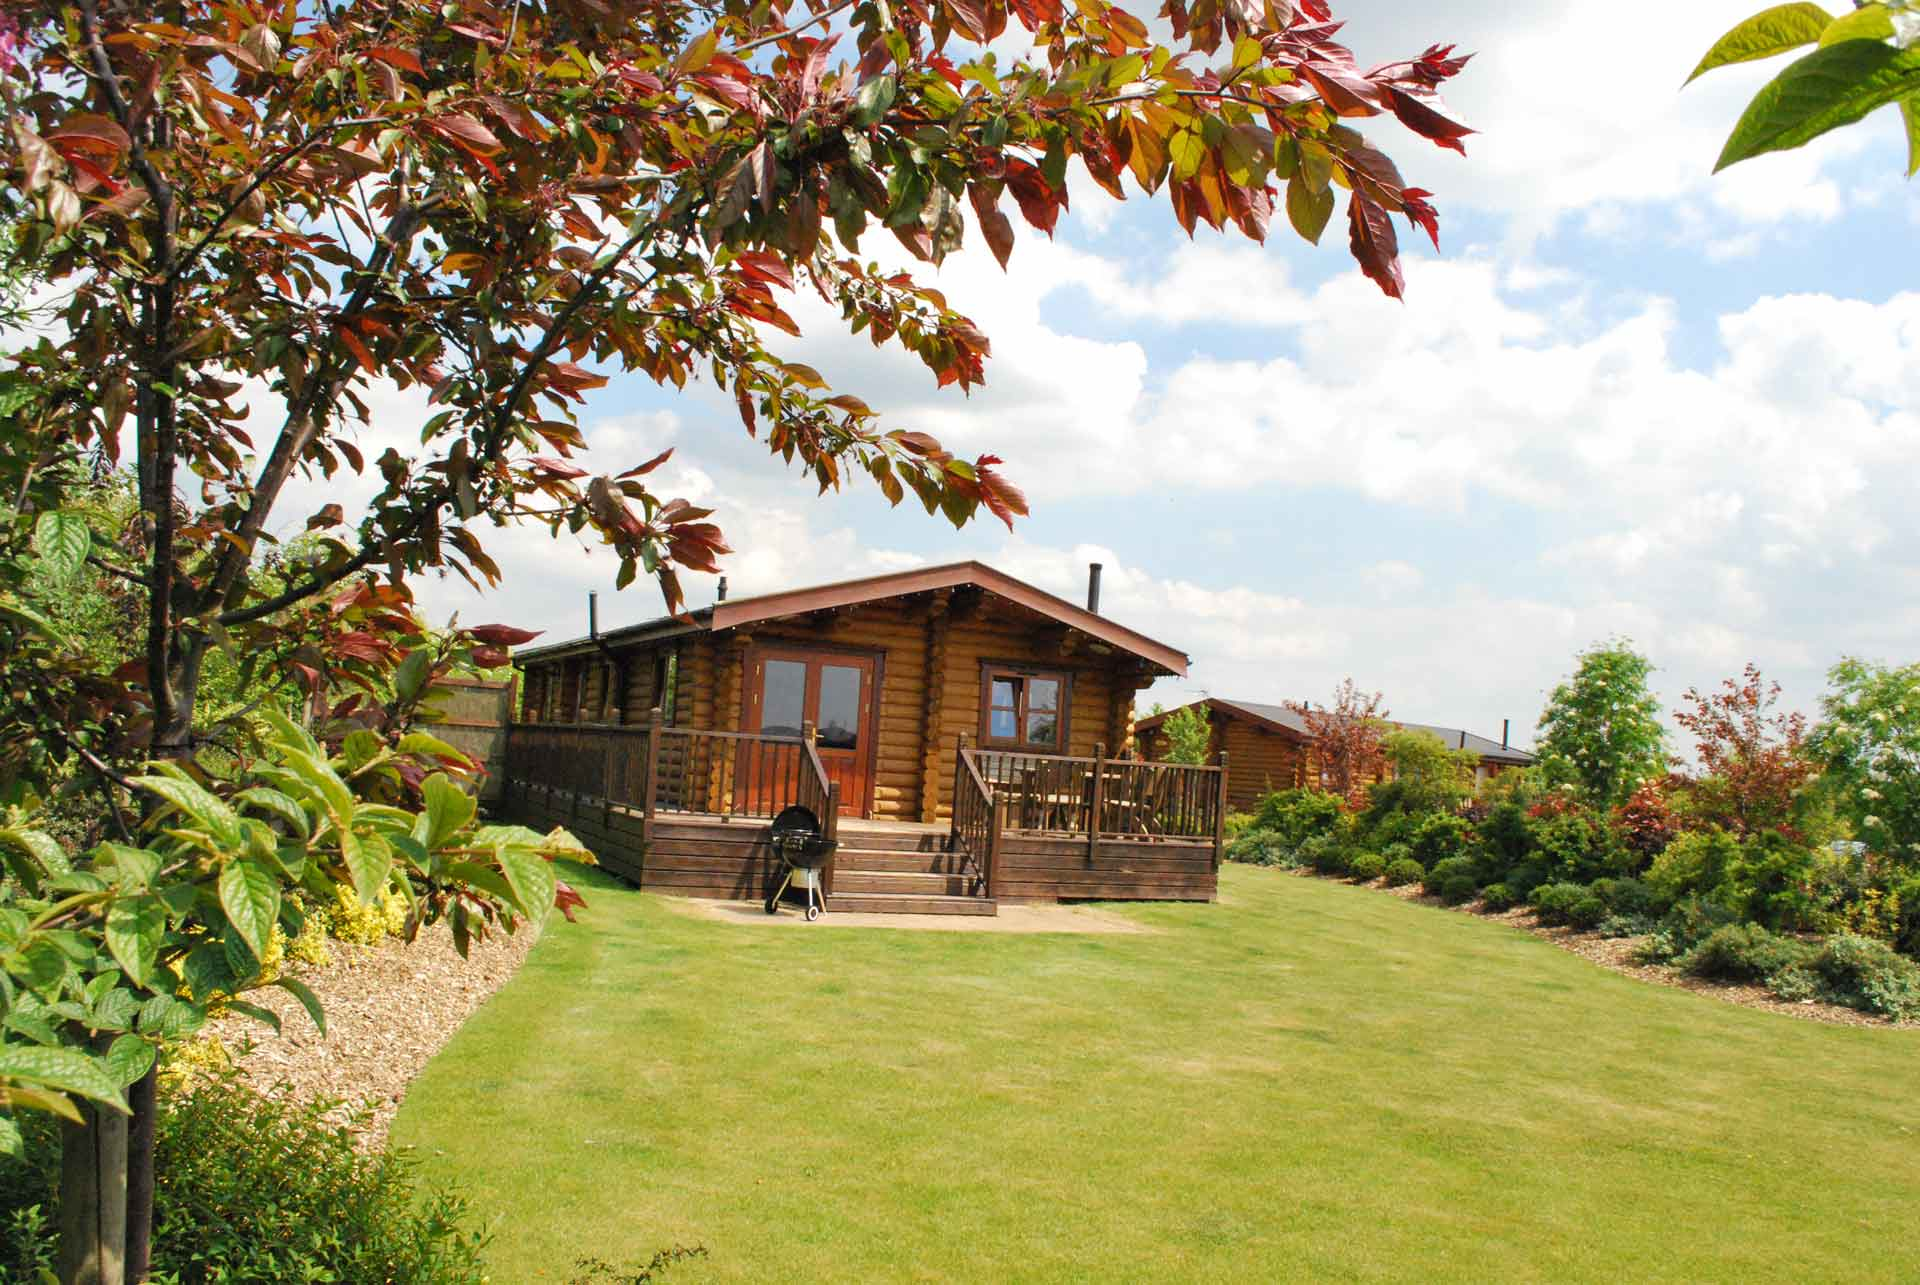 Willow-Lodge-Outside-Eye-Kettleby-Lakes